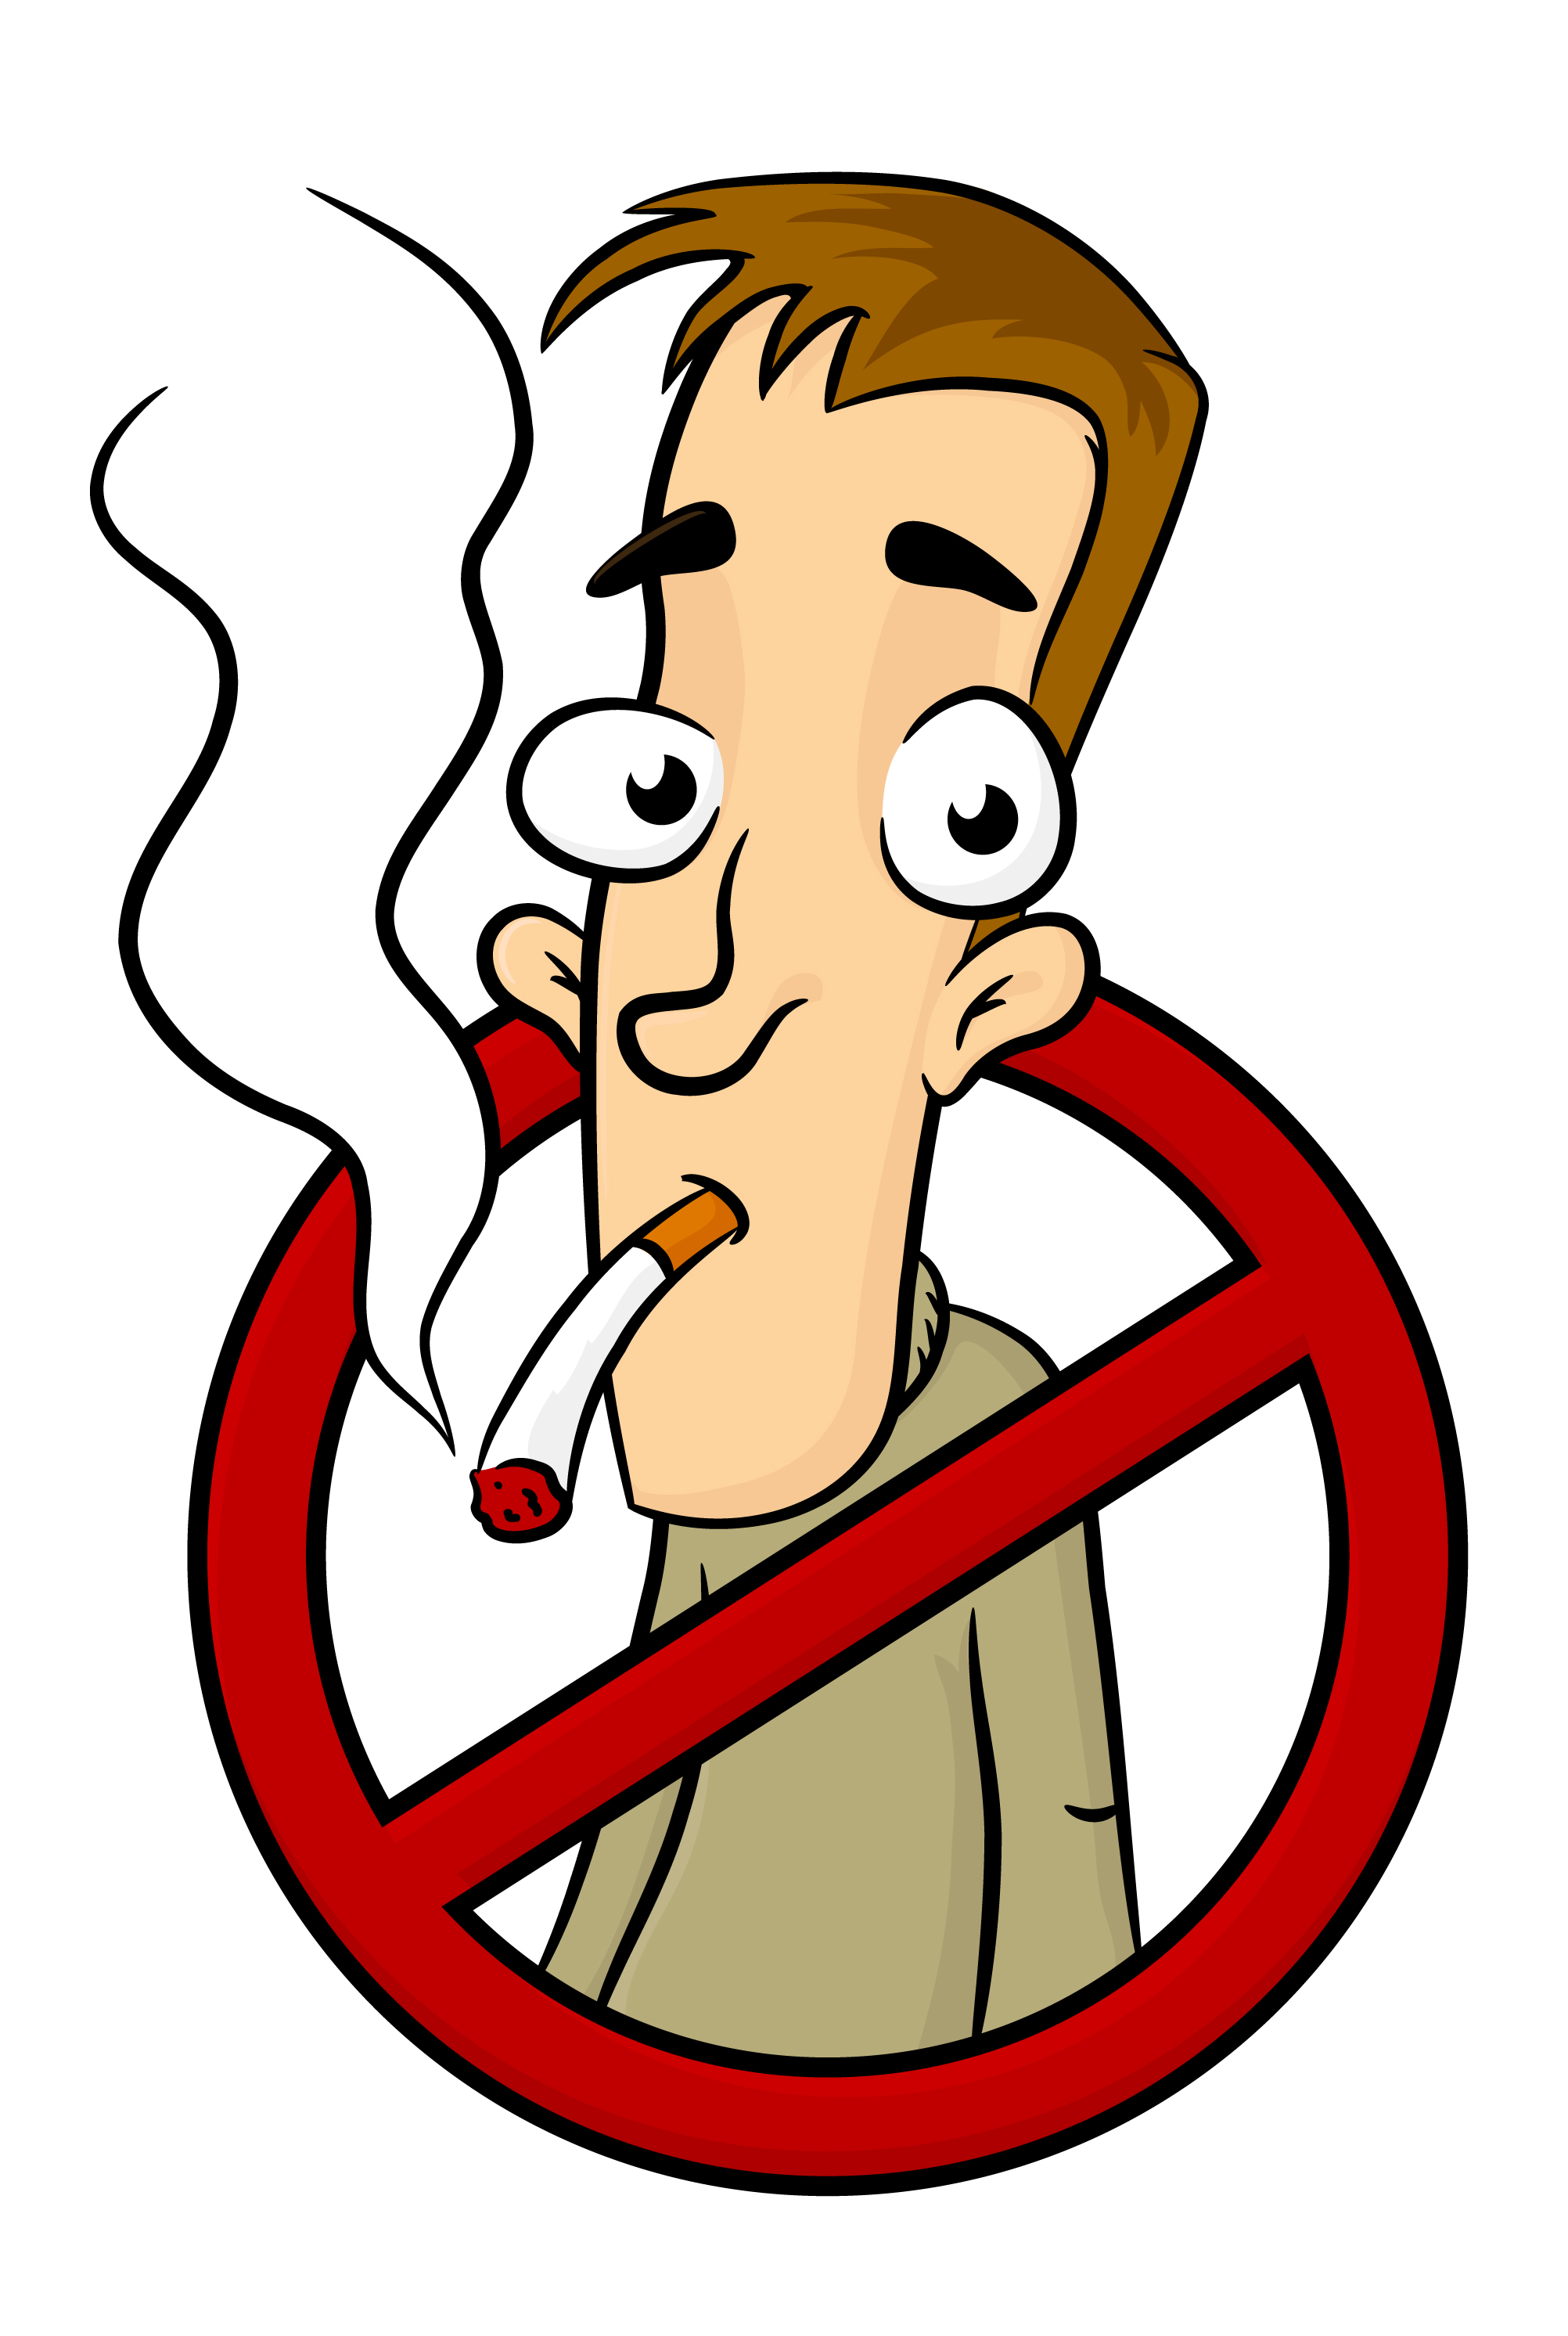 . Bad clipart smoking